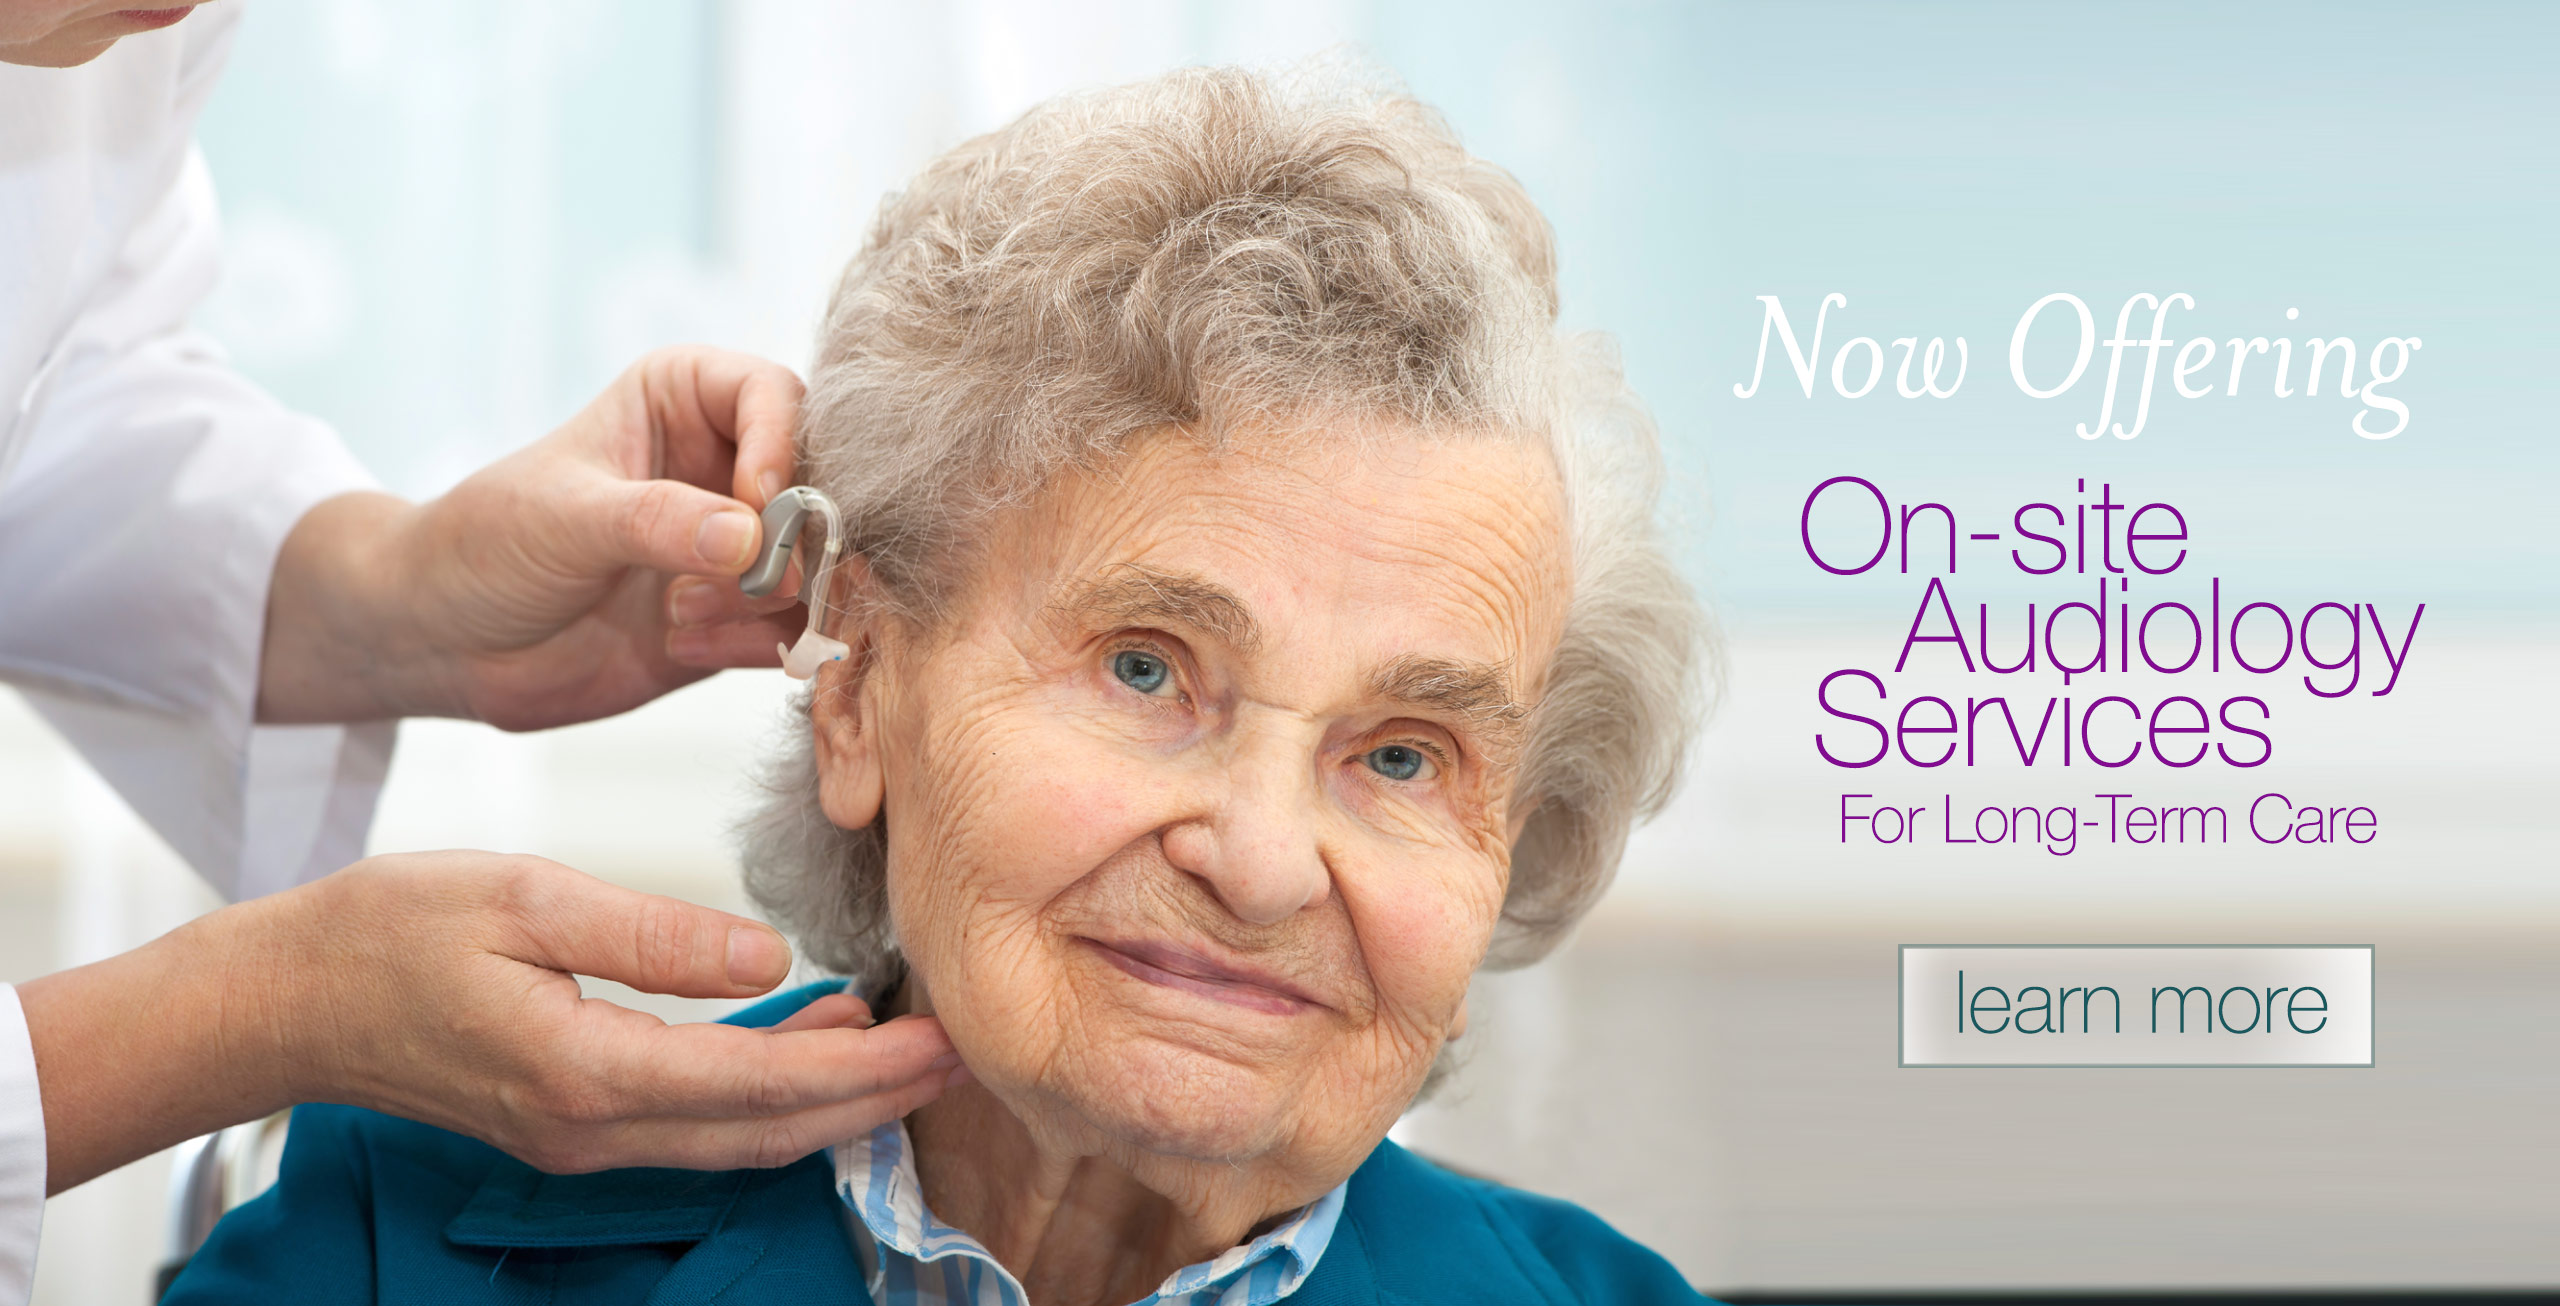 On-Site Audiology Services for Long-Term Care Facilities